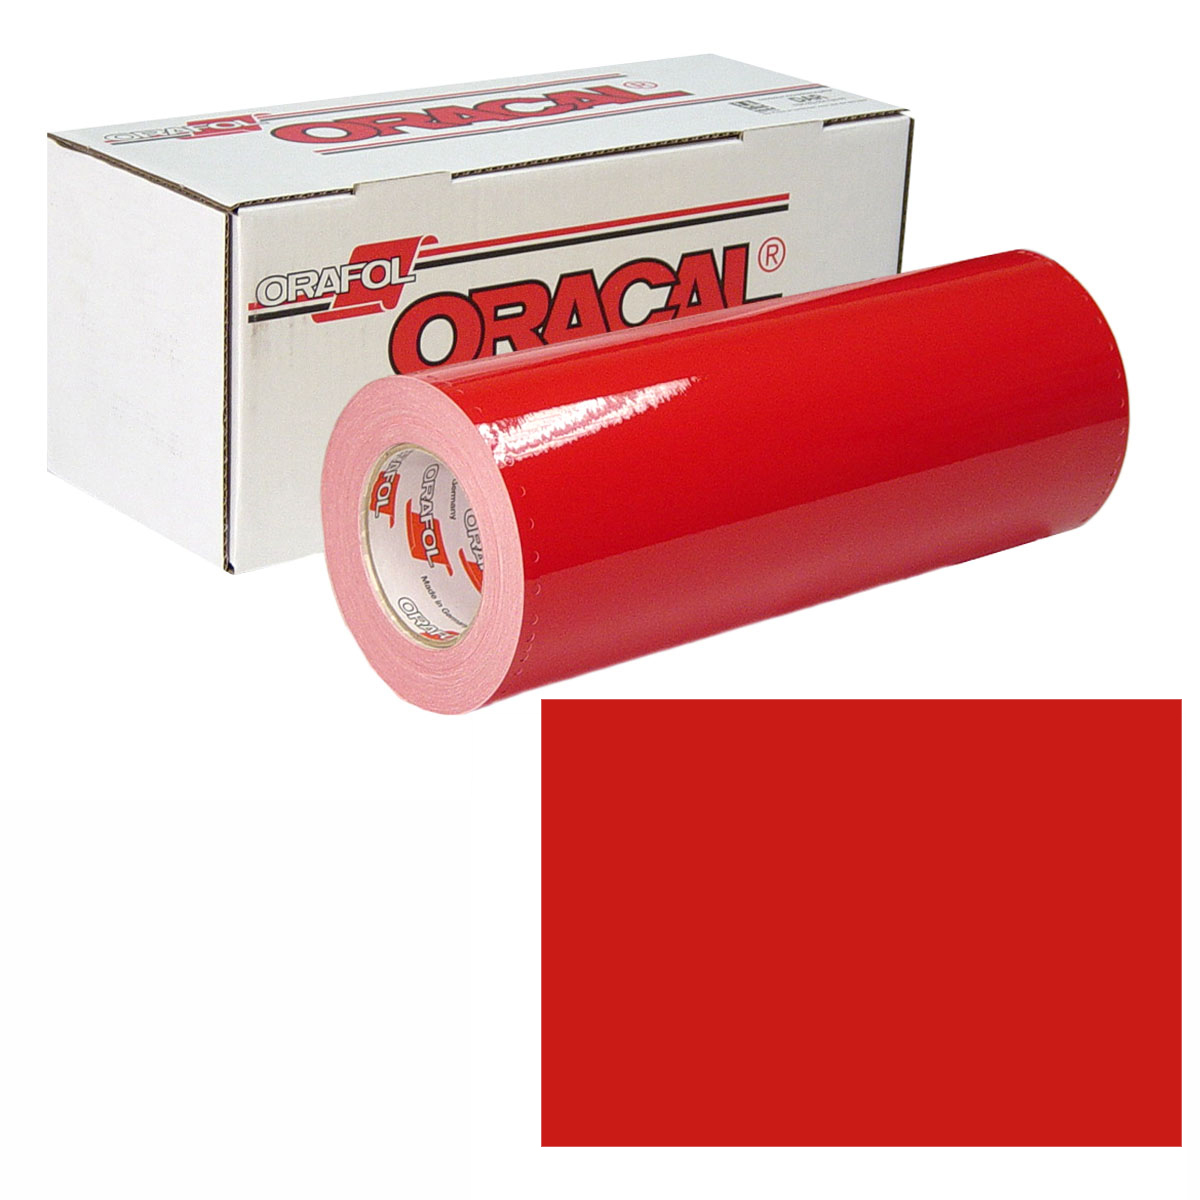 ORACAL 951 15In X 50Yd 324 Blood Red